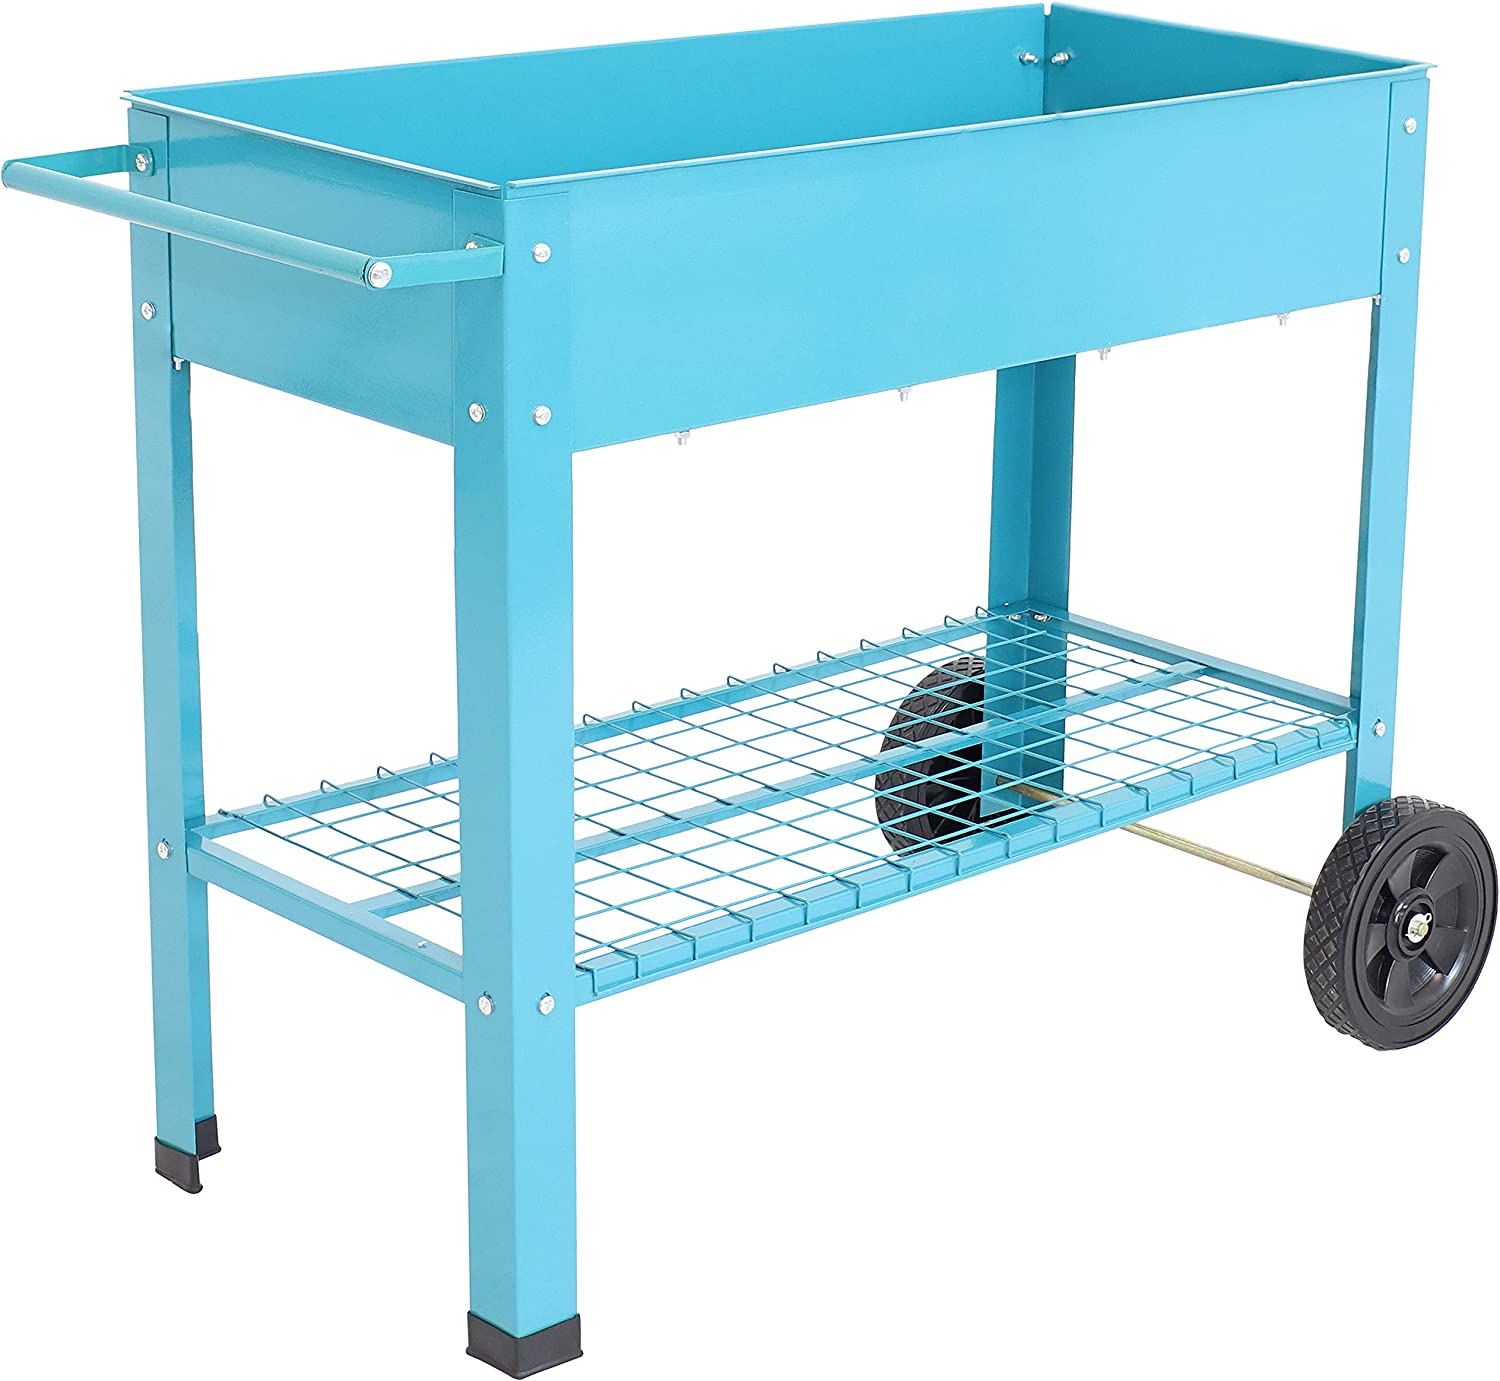 Sunnydaze Raised Garden Bed with Handlebar and Wheels - Galvanized Steel - Outdoor Mobile Elevated Planter Box Cart - 43-Inch - Grow Vegetables and Plants on The Patio, Deck, or Yard - Blue